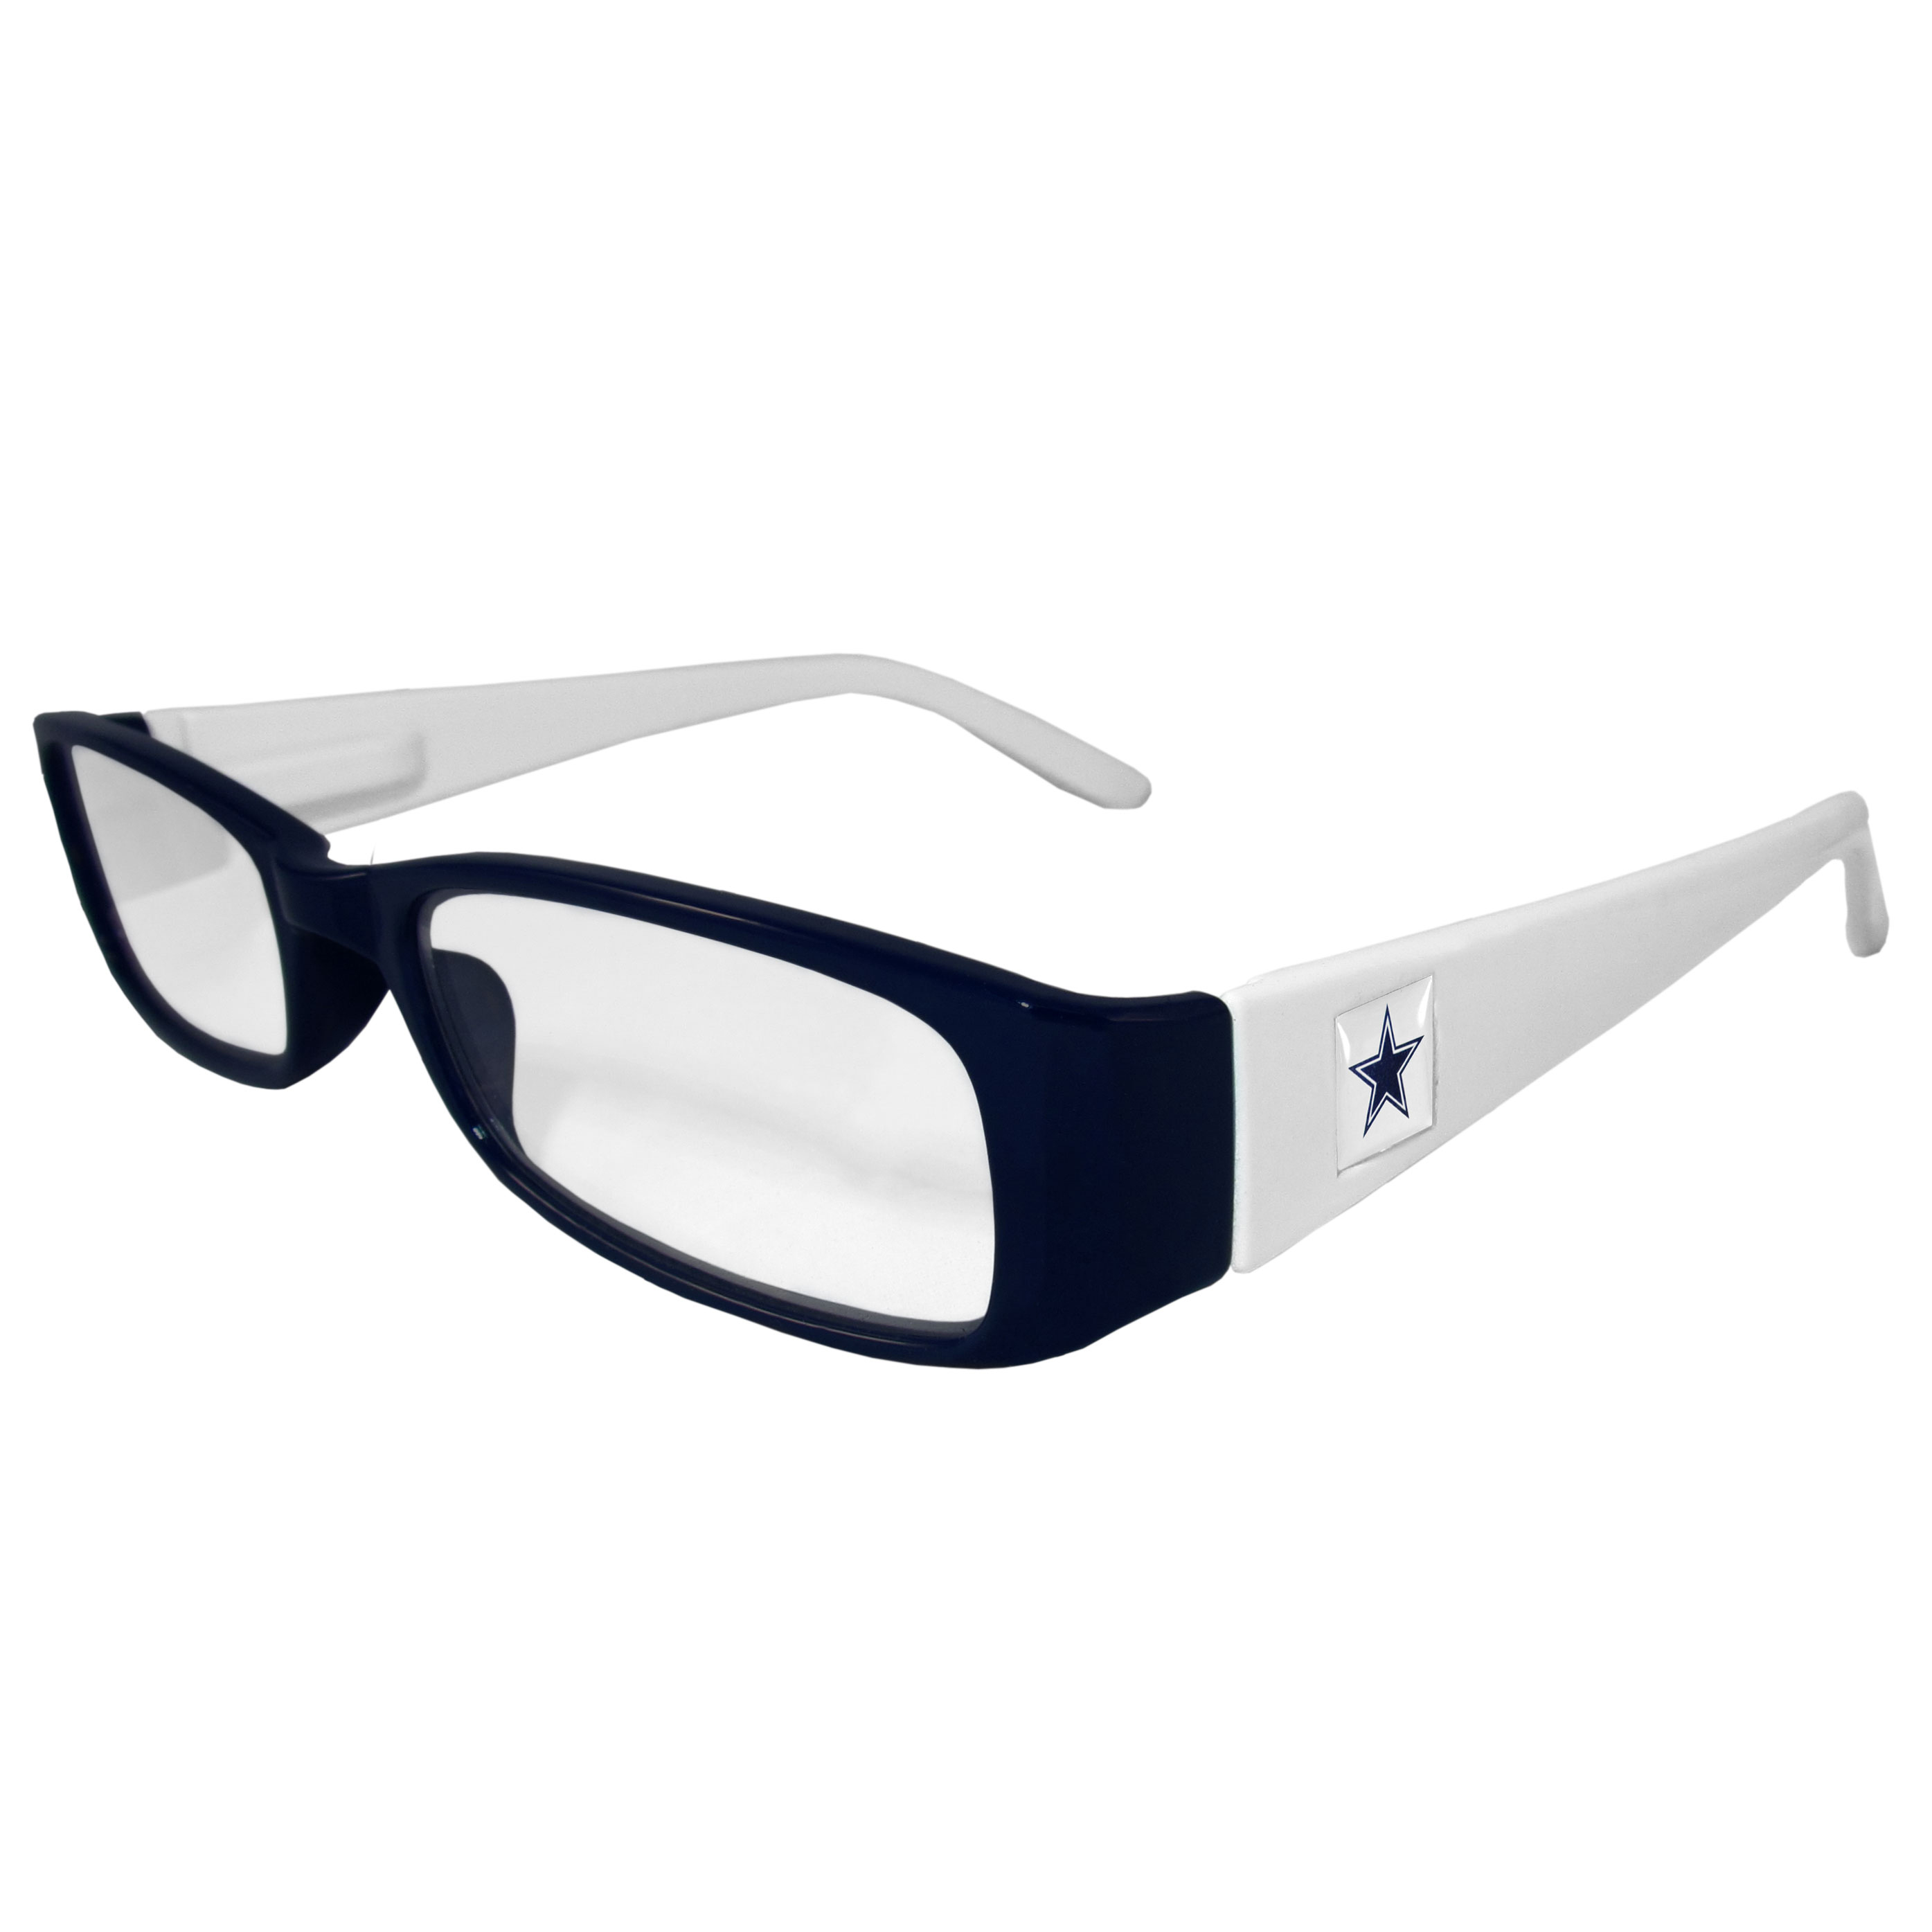 Dallas Cowboys Reading Glasses +1.25 - Our Dallas Cowboys reading glasses are 5.25 inches wide and feature the team logo on each arm. Magnification Power 1.25